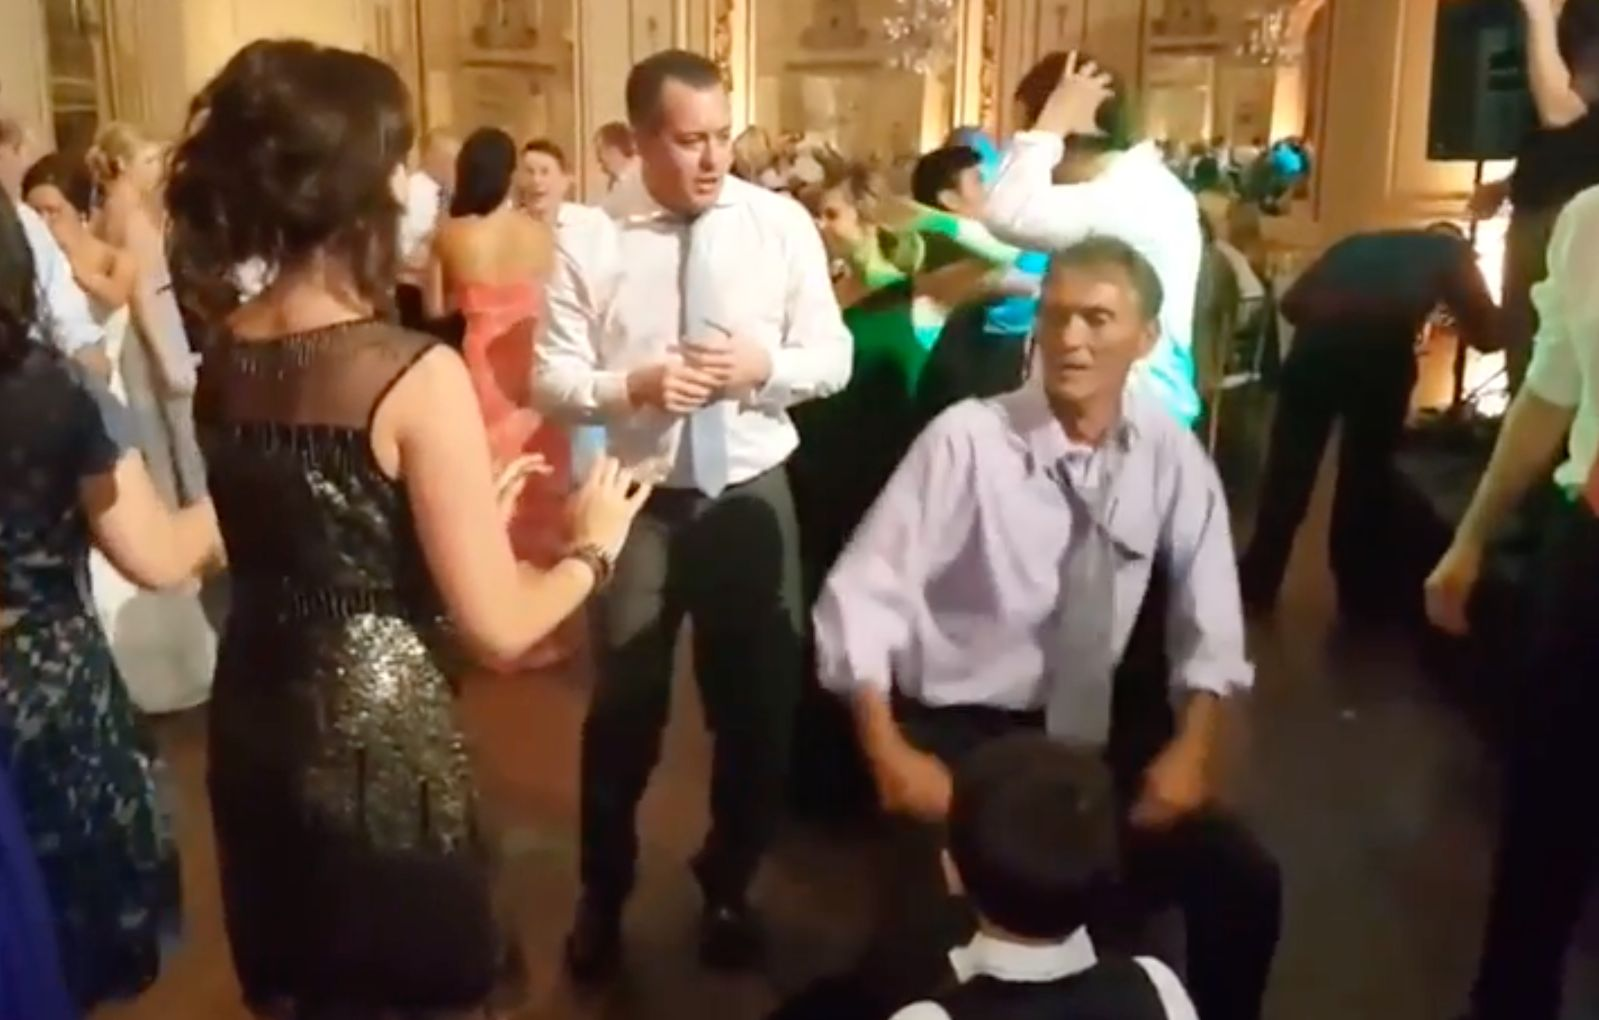 Man Dances Far Too Energetically At Wedding, We All Know What Happens